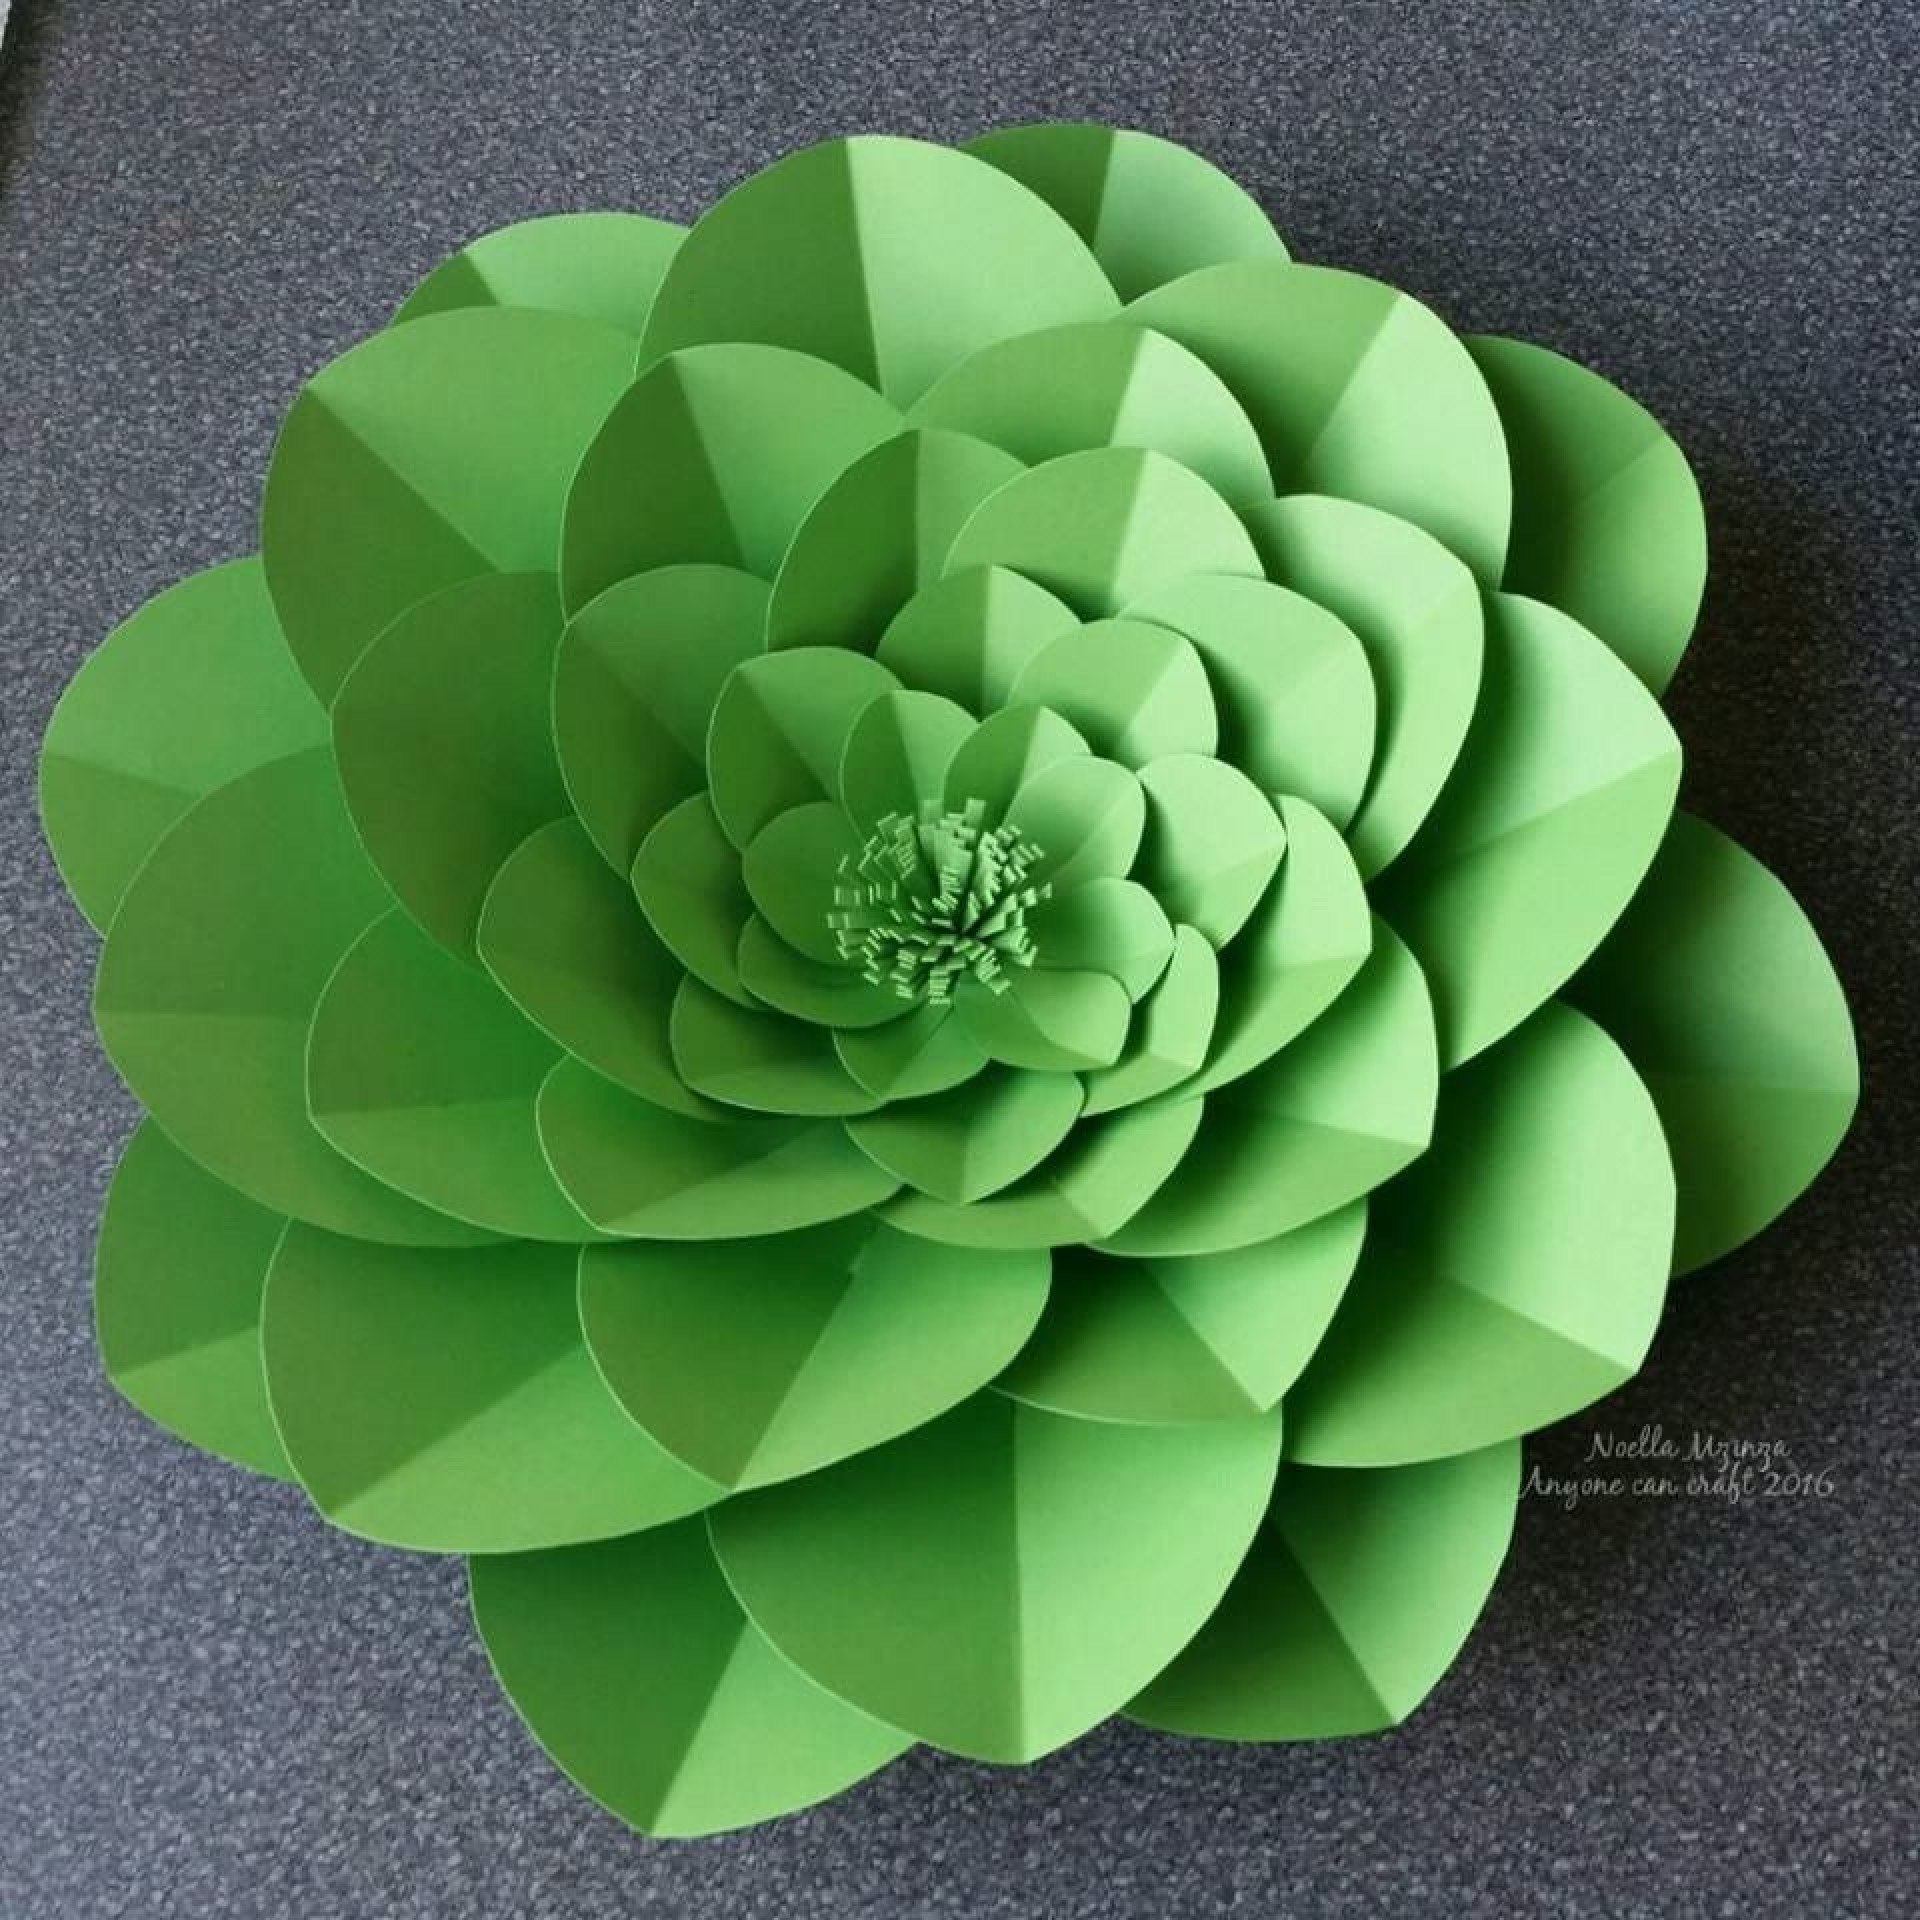 002 Singular Giant Paper Flower Template Free Download Picture 1920